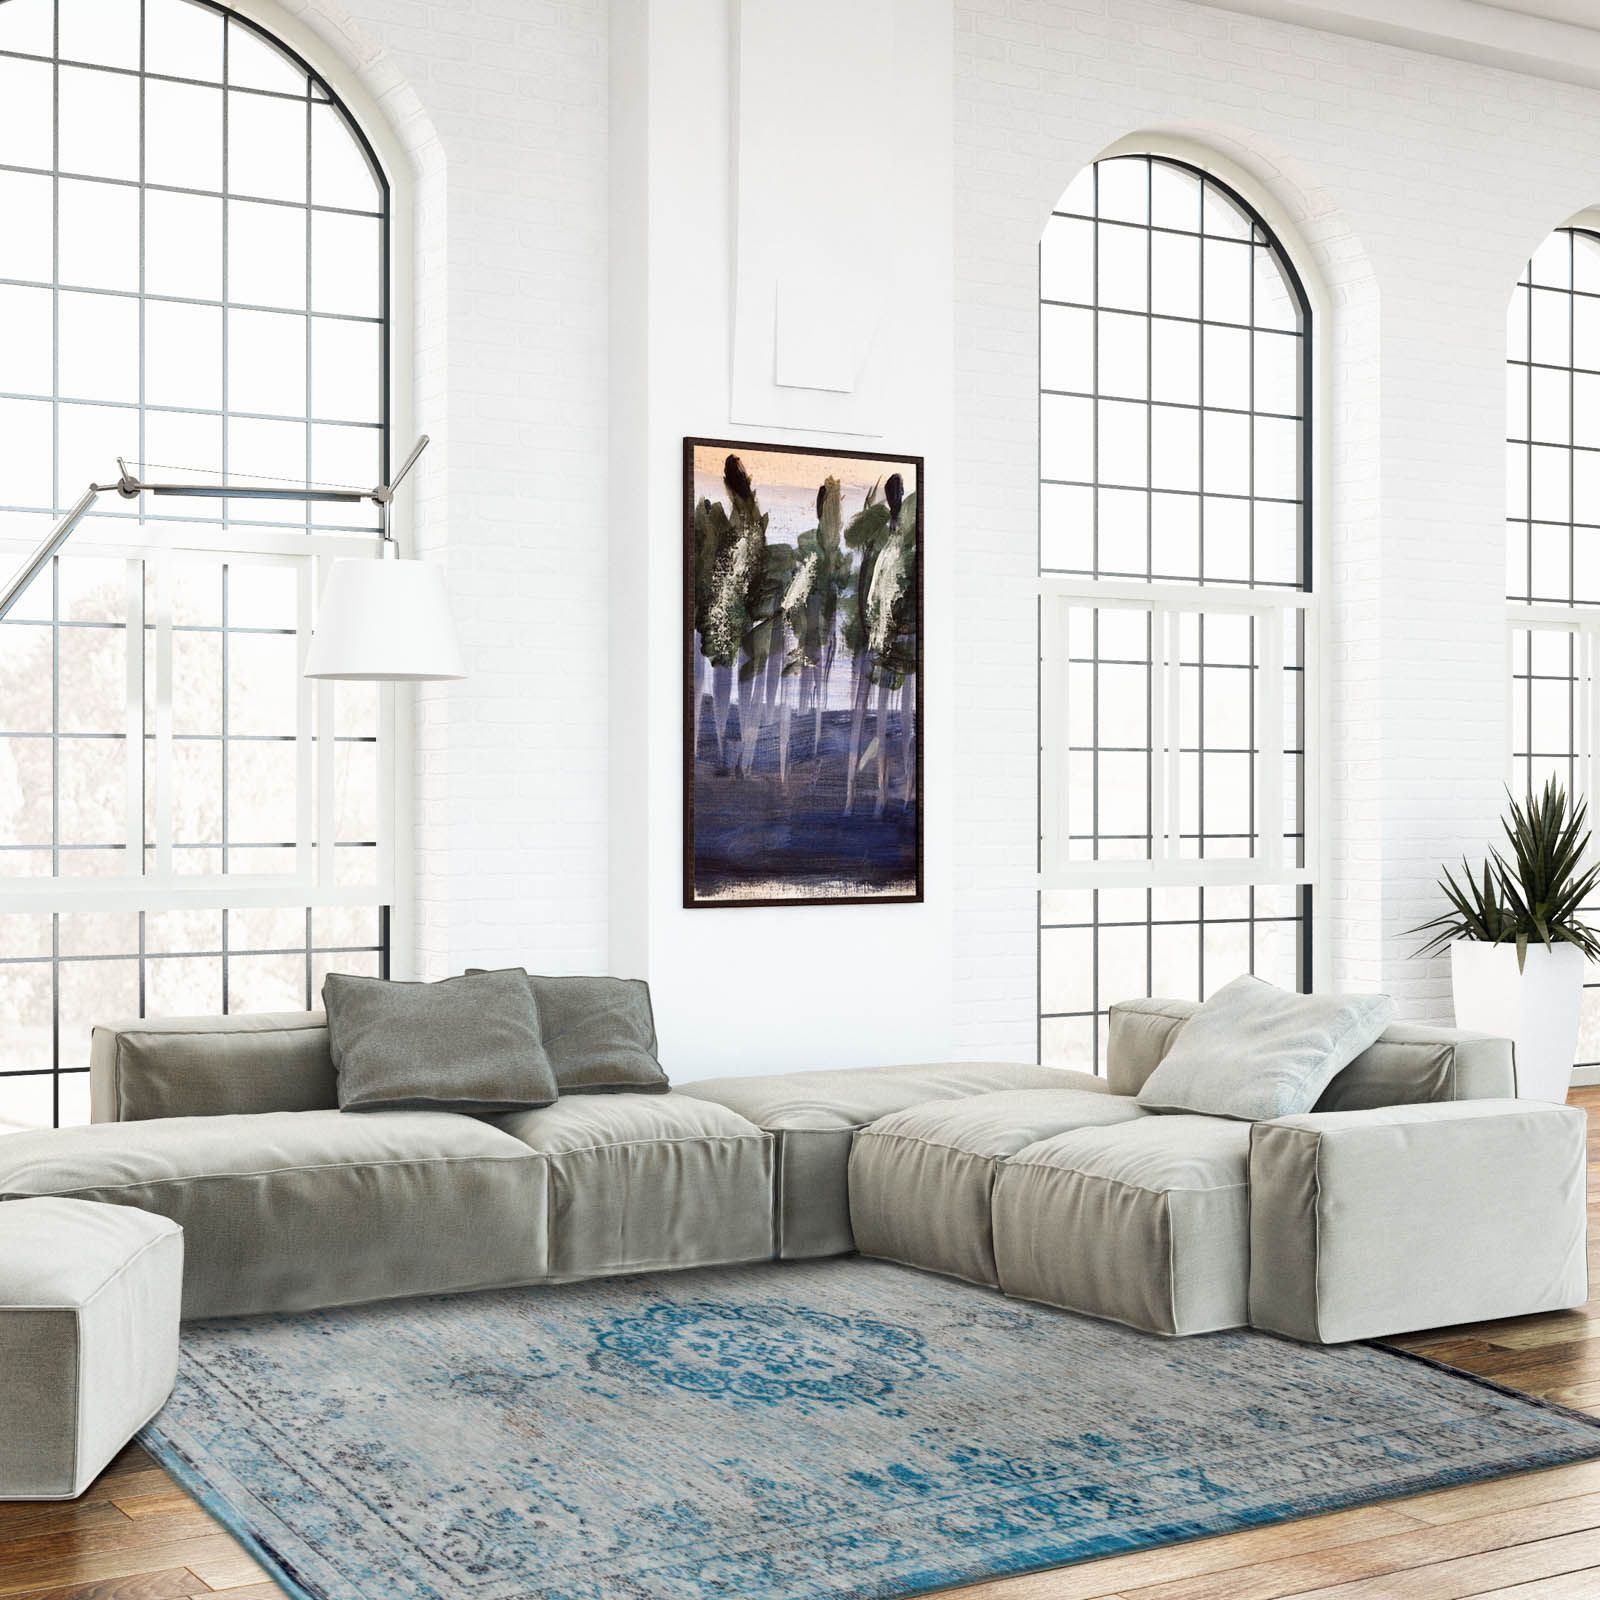 Louis De Poortere Fading World Rugs 8255 Grey Turquoise60x90cm 3 0 X2 0 Blue Rooms Grey Rugs Shop Interiors